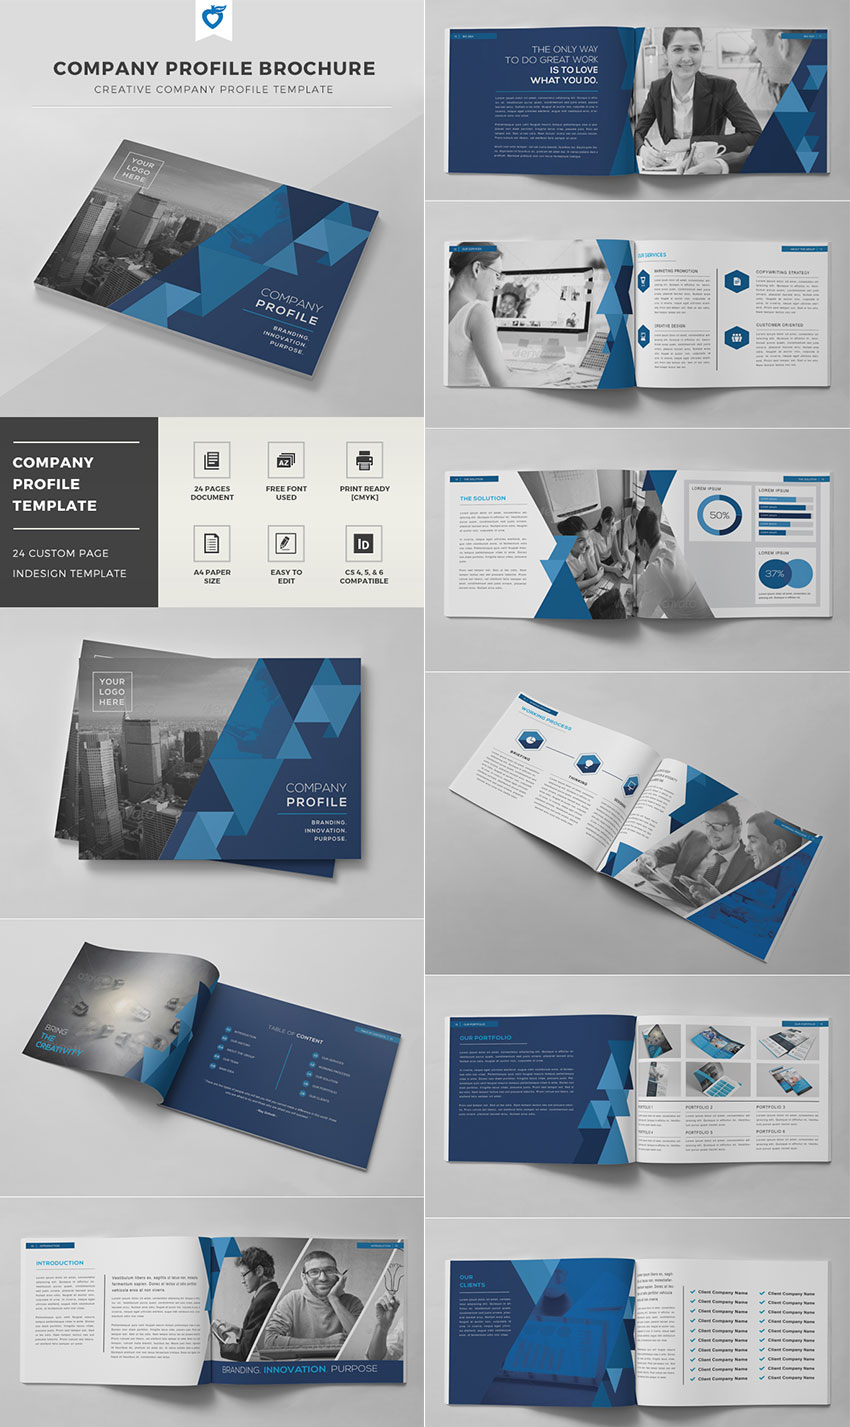 20 best indesign brochure templates for creative for Top product design companies